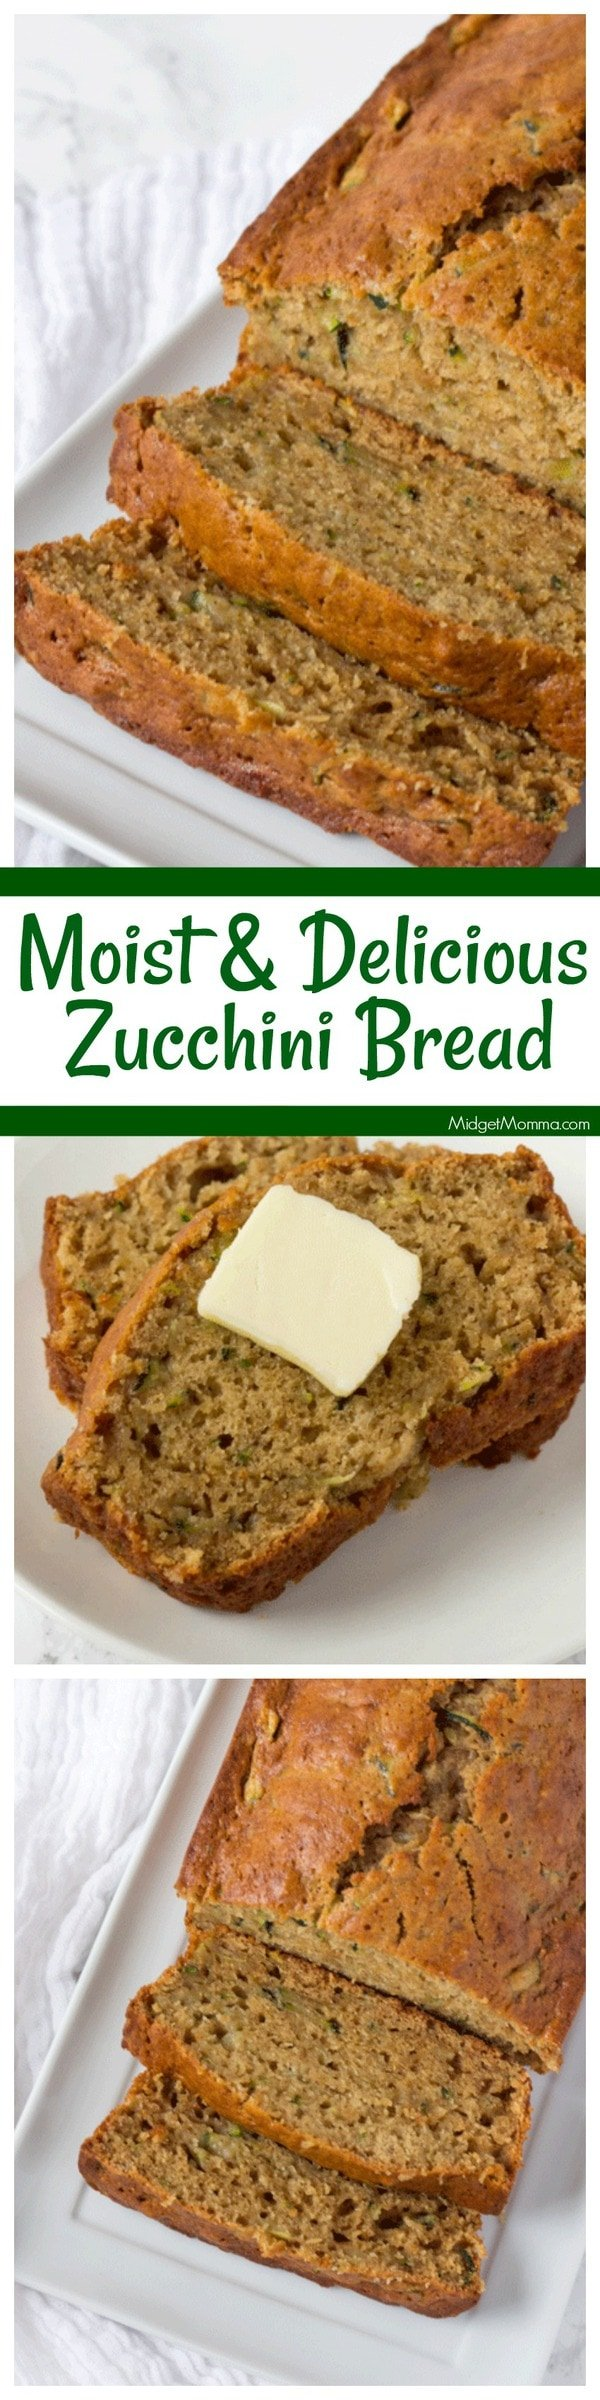 Zuchini Bread Recipes And Cake Mix